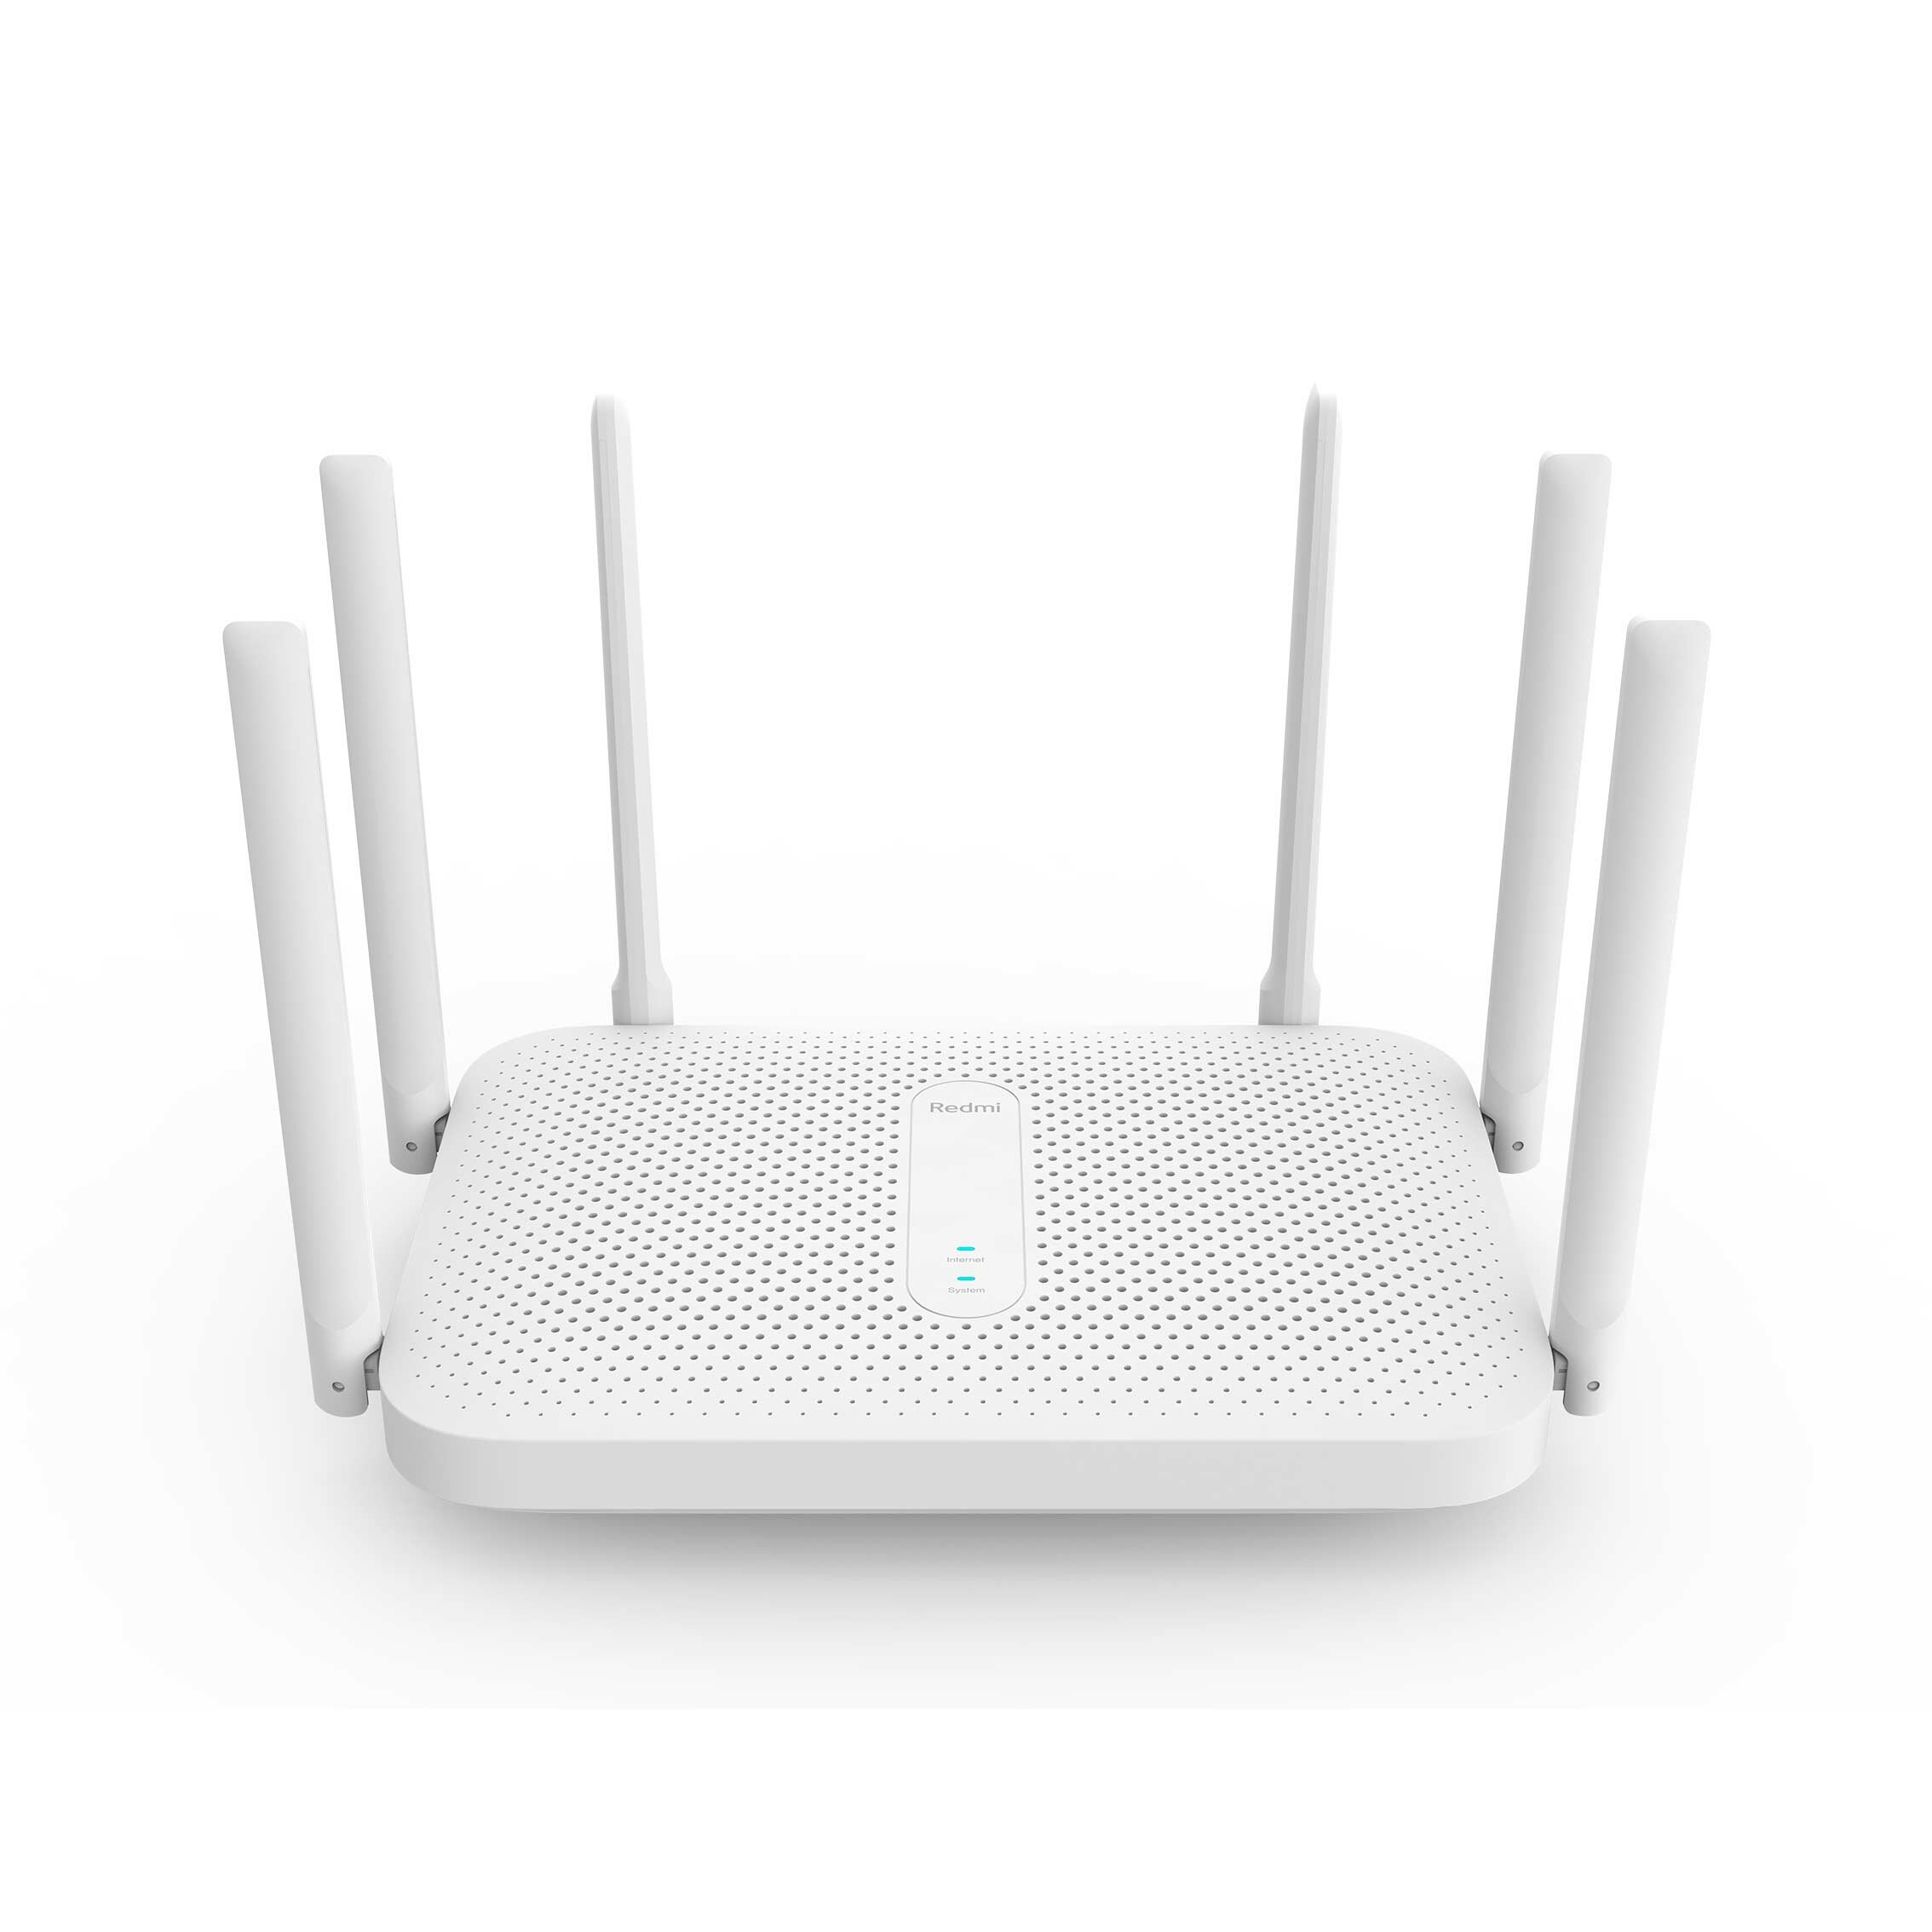 Xiaomi Redmi Router AC2100 2033Mbps 2.4G 5G Dual Band Wireless Router 6 * High Gain Antena 128MB OpenWRT WiFi Router